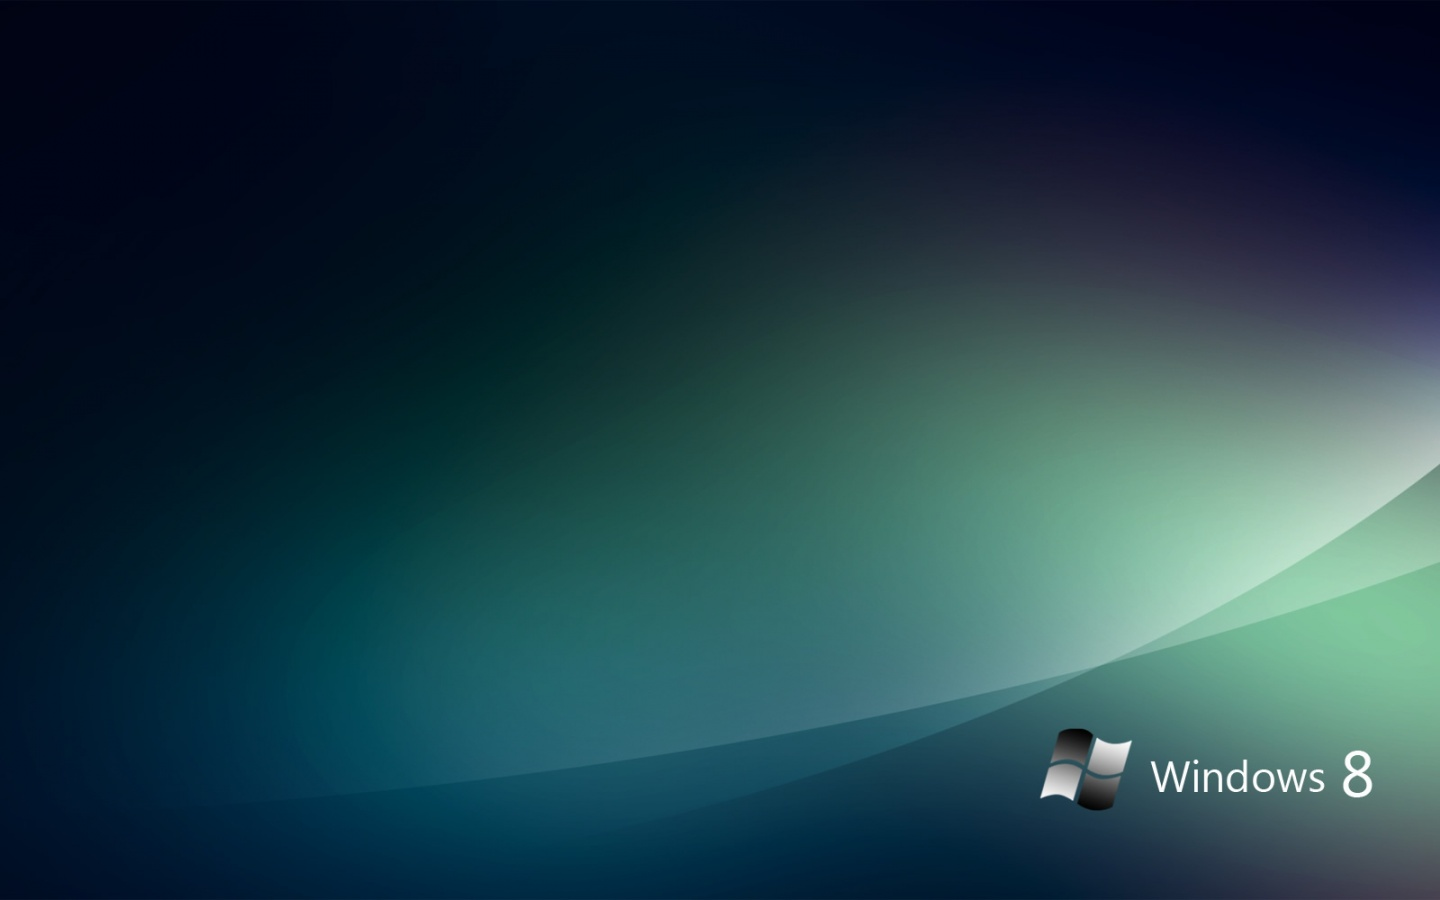 Windows 8 Monochrome Wallpapers